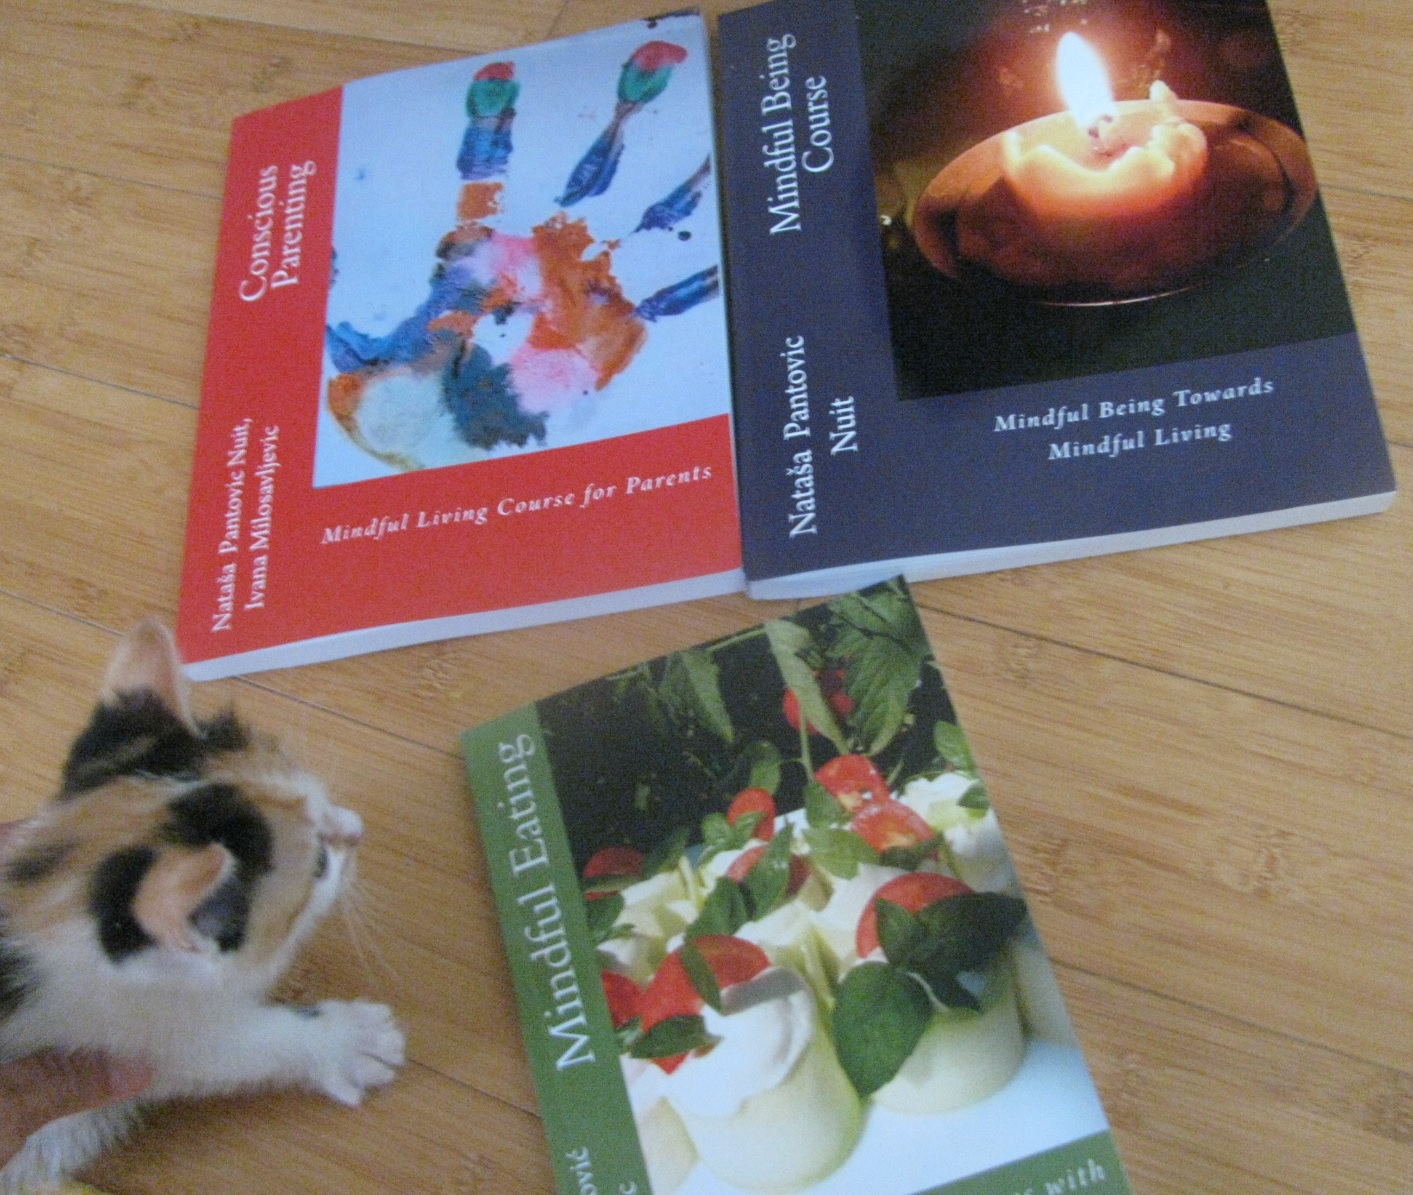 Alchemy of love mindfulness training books: Conscious Parenting, Mindful Eating, Mindful Being